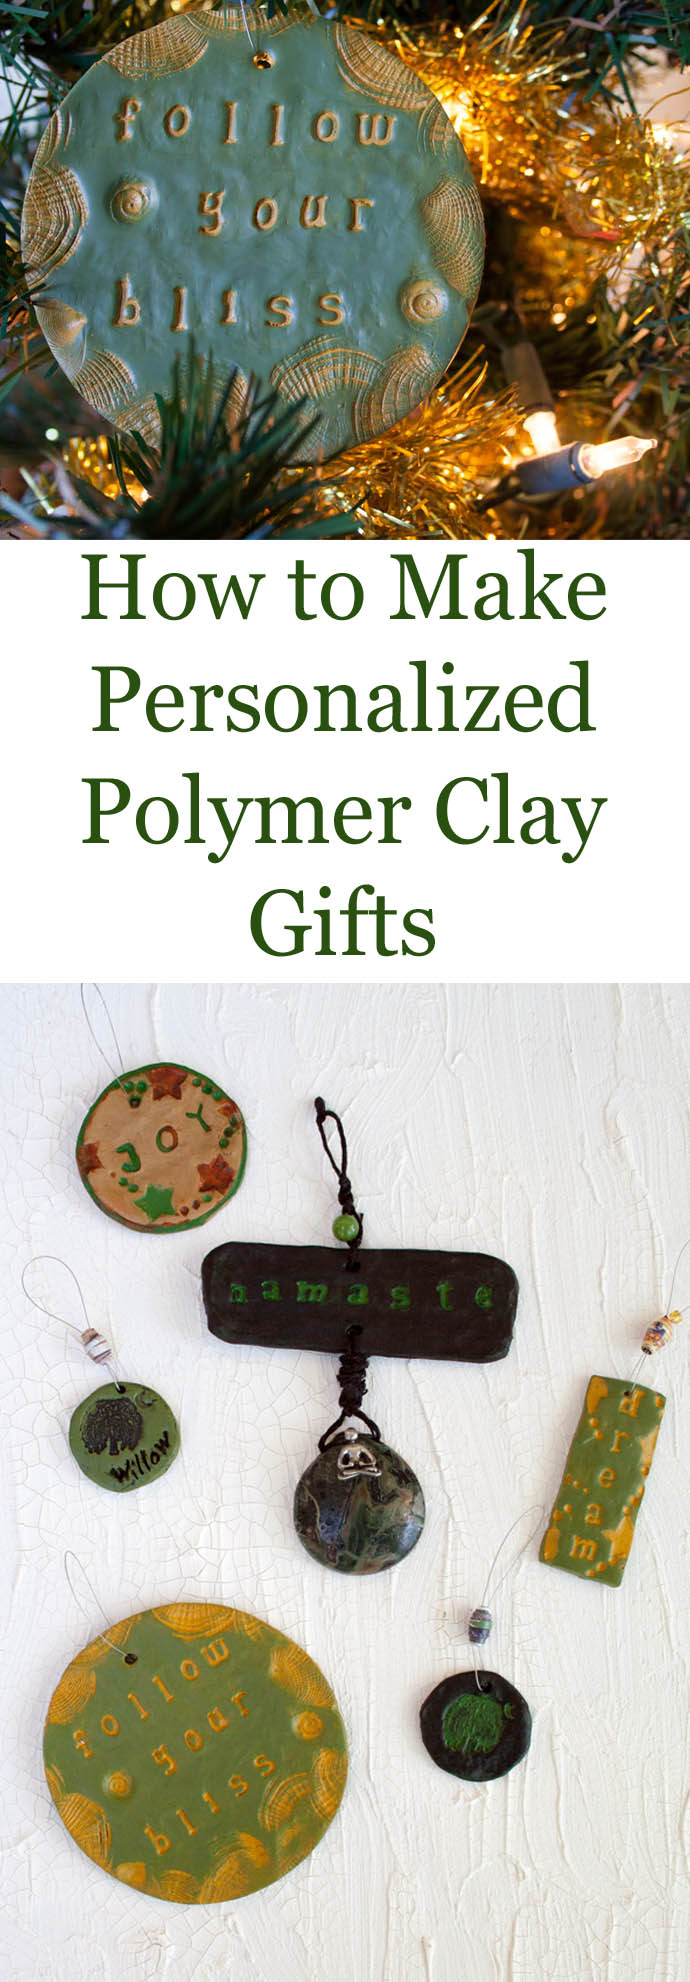 How to Make Personalized Polymer Clay Gifts collage photo with text.